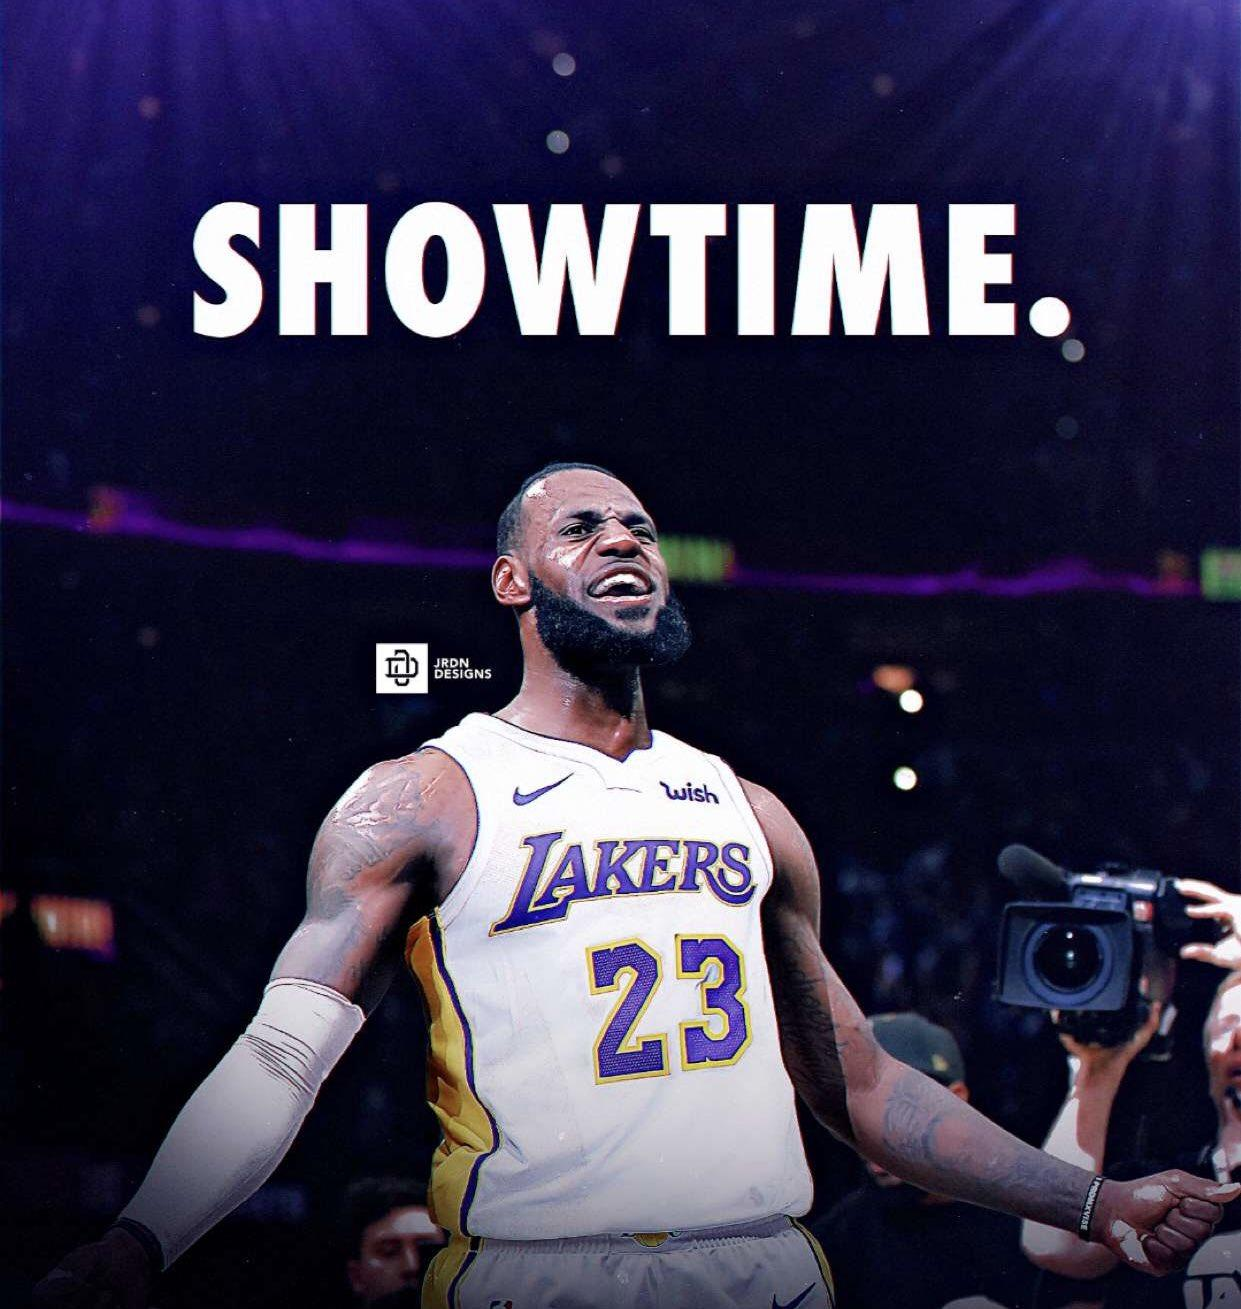 Lebron James showtime